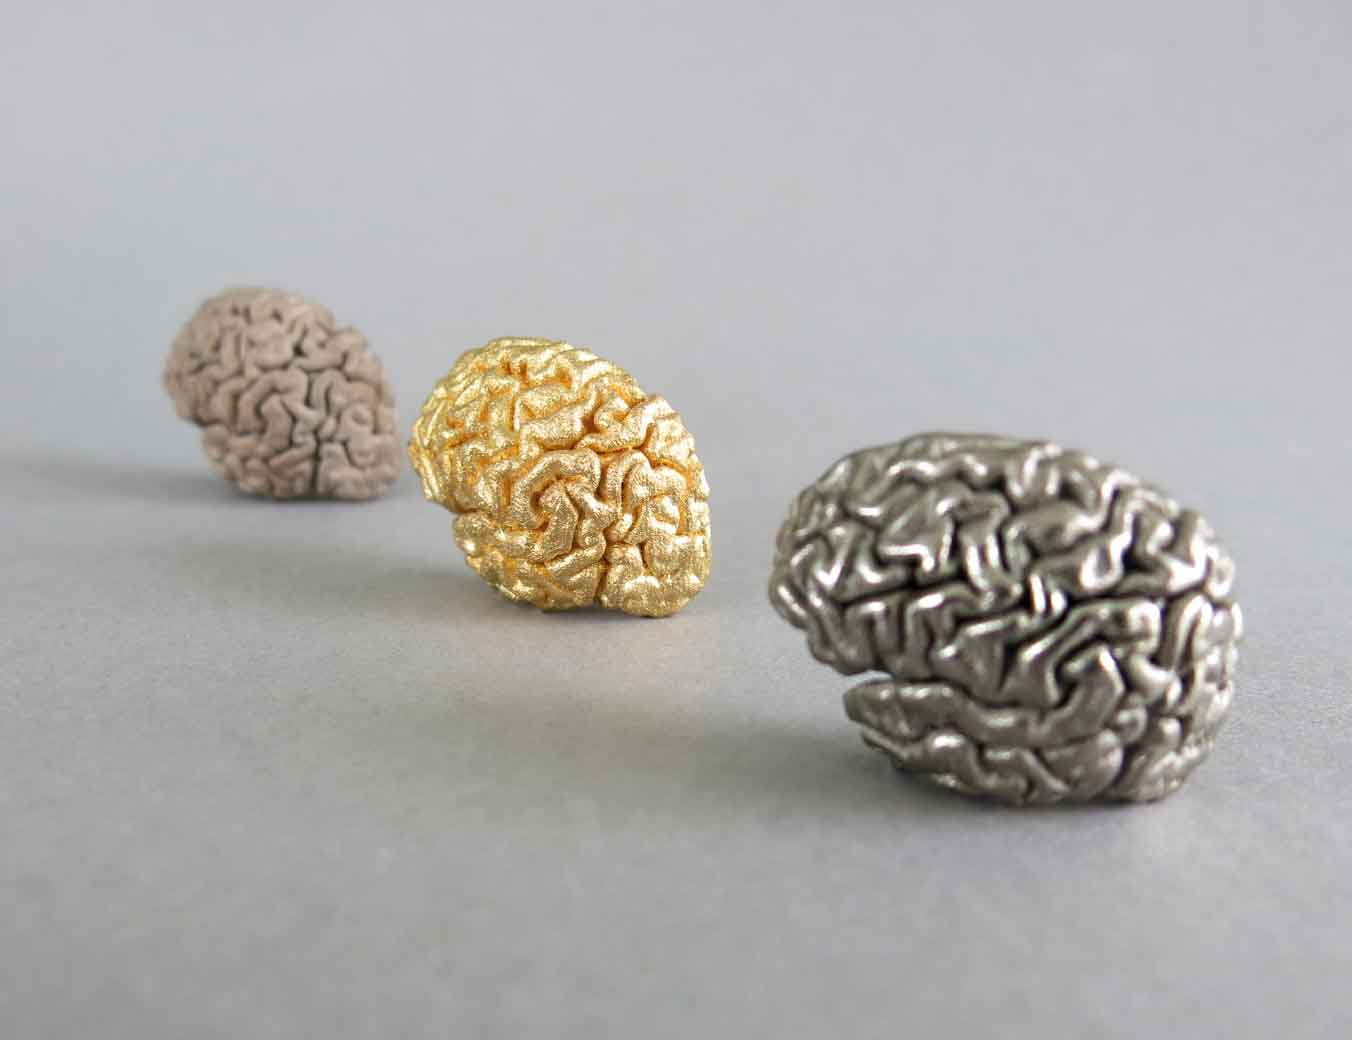 3D Printed Brain with Binder Jetting Stainless Steel